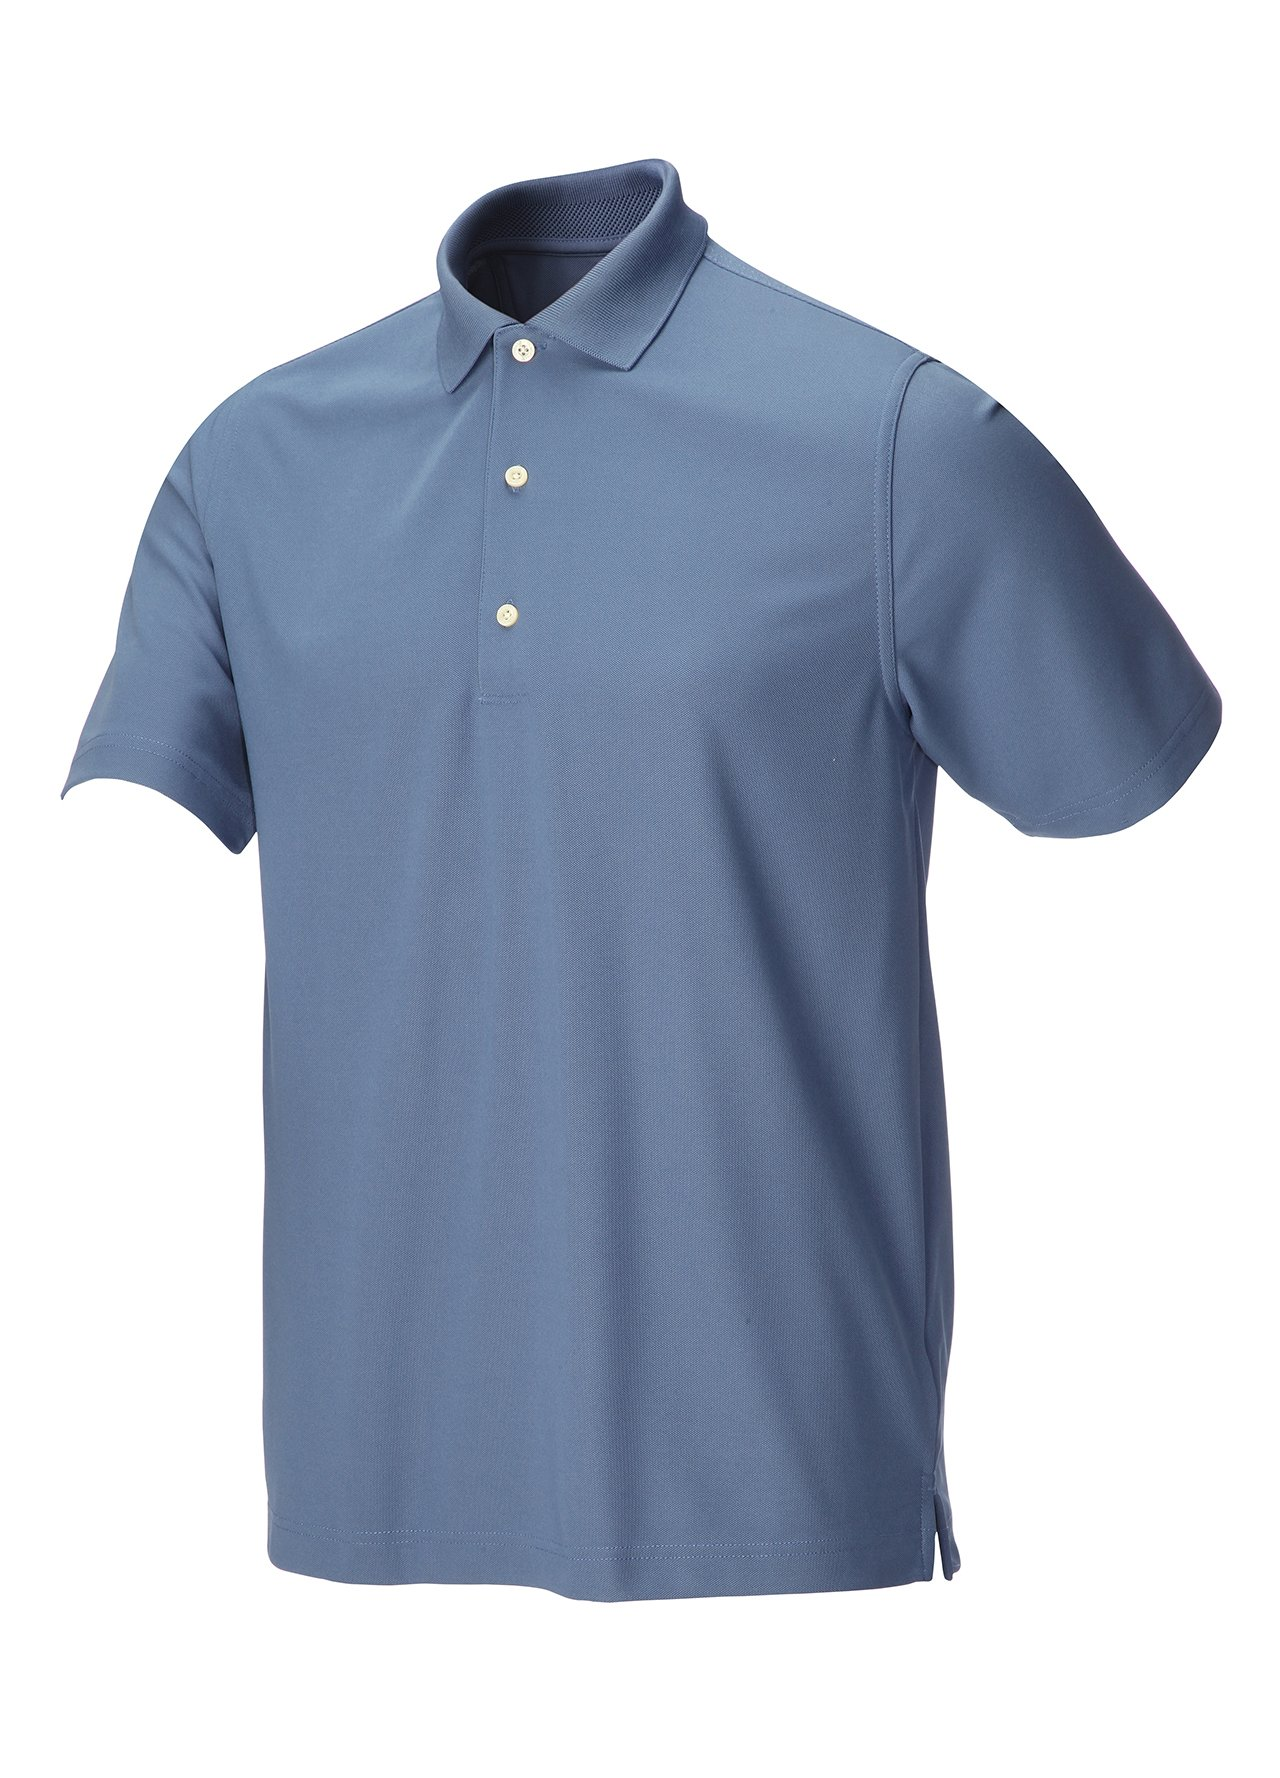 Greg norman protek pique golf polo shirt ebay for Golf t shirts for sale